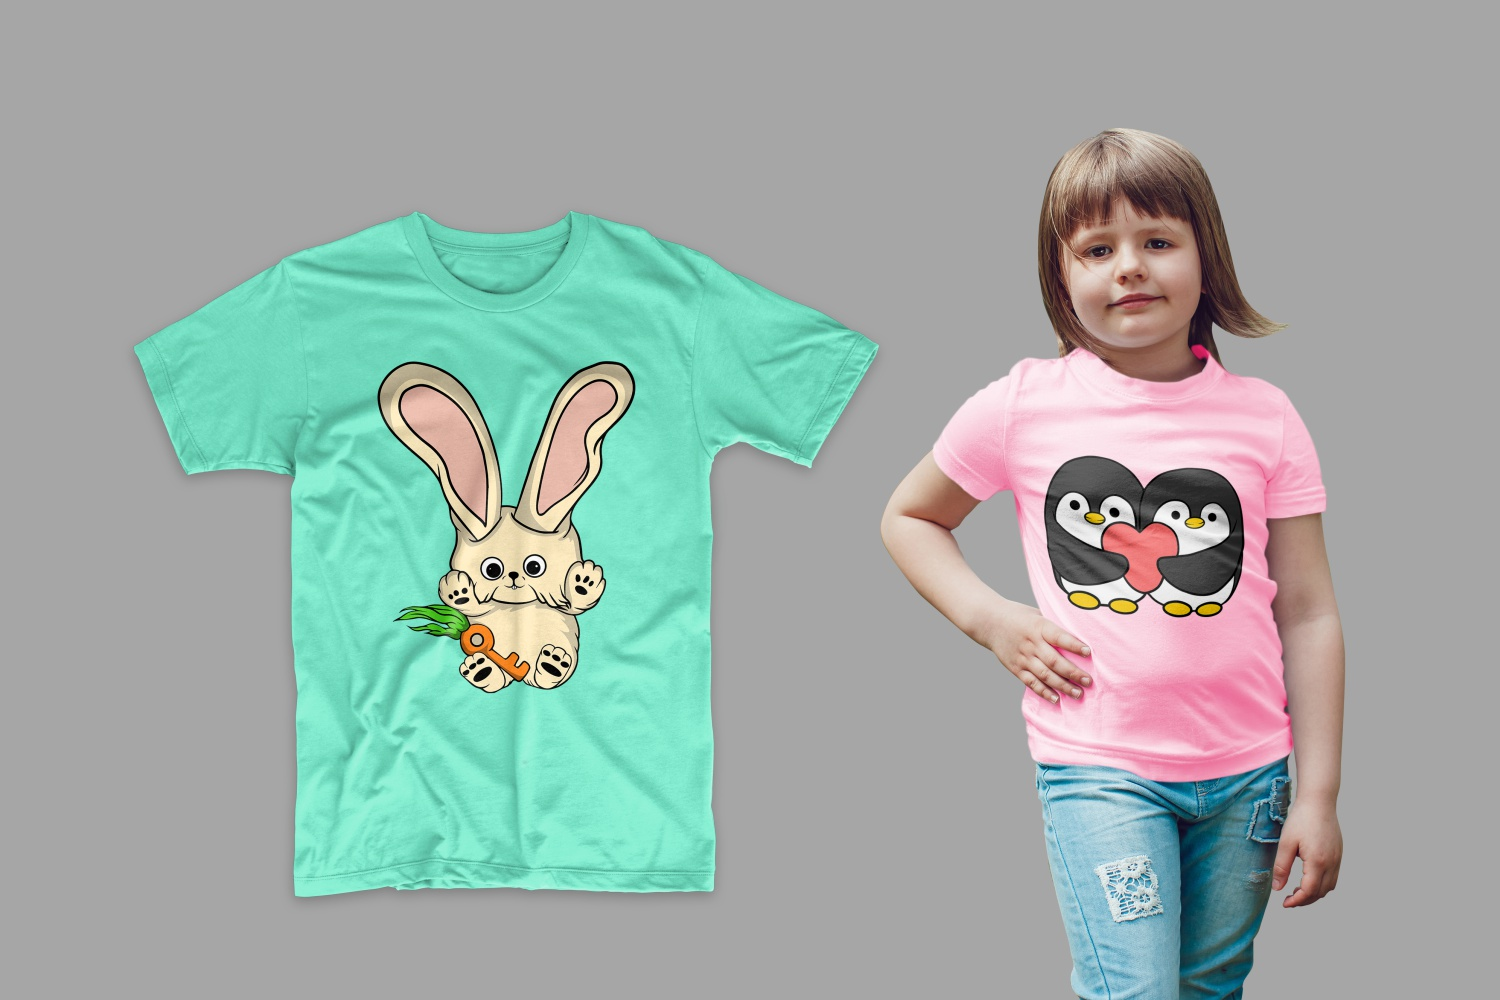 T-shirt pink with penguins in love and green with a bunny.